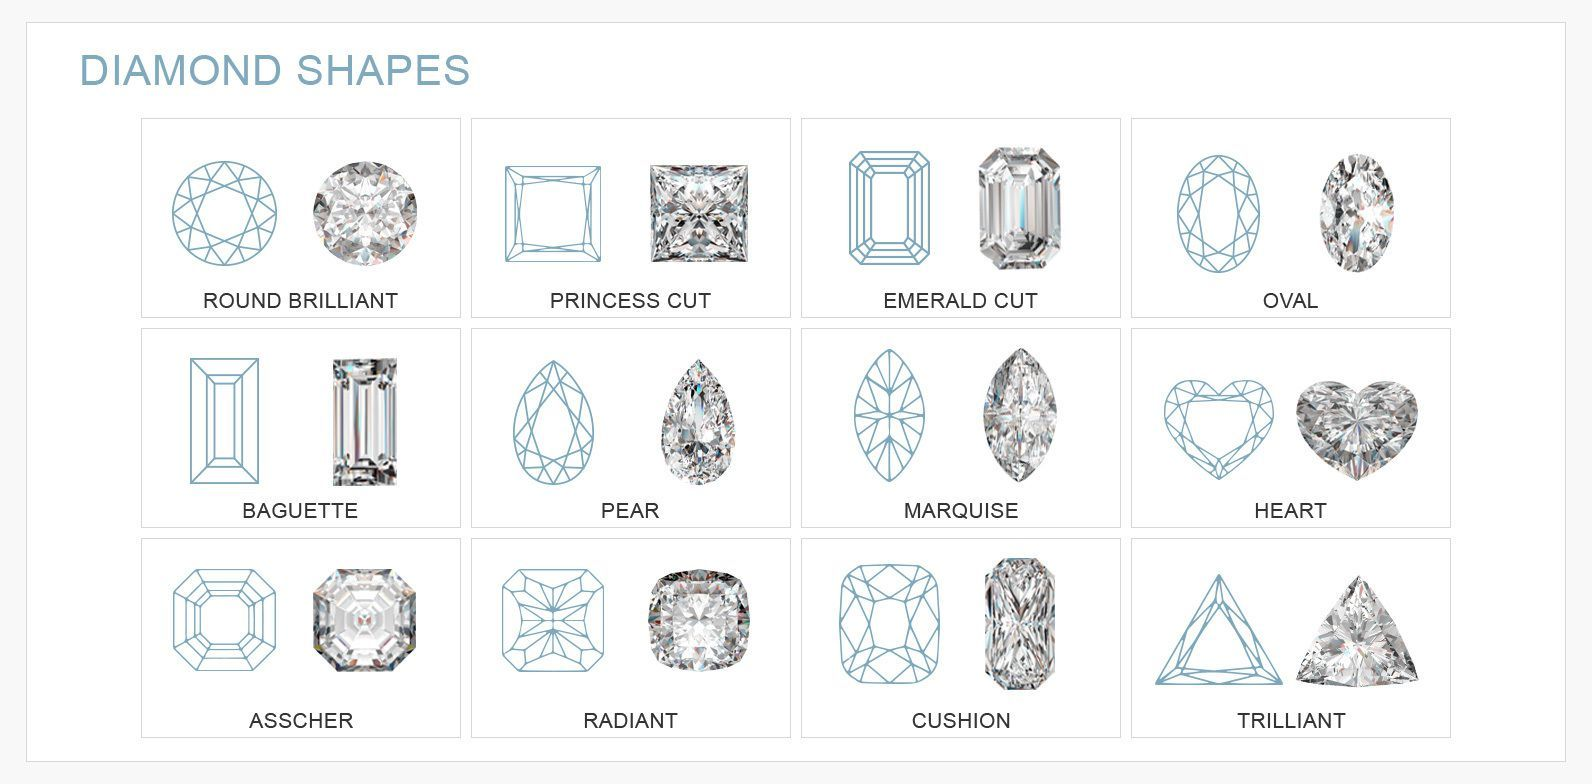 Drawn diamonds shape cut #4